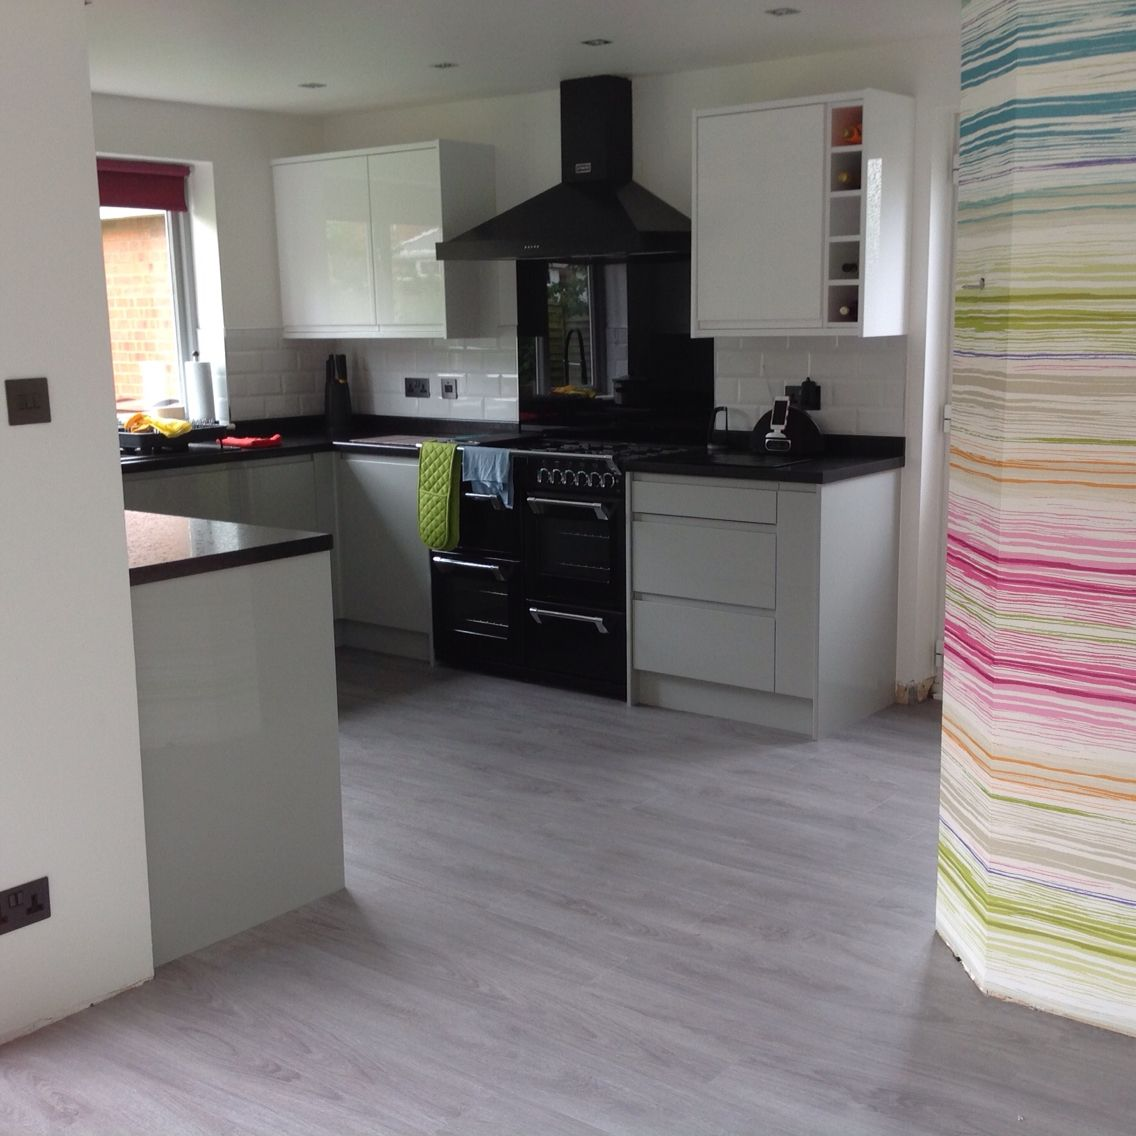 Wickes Kitchen Furniture Kitchen Floor Finally Done Moduleo Classic Oak Love The New White